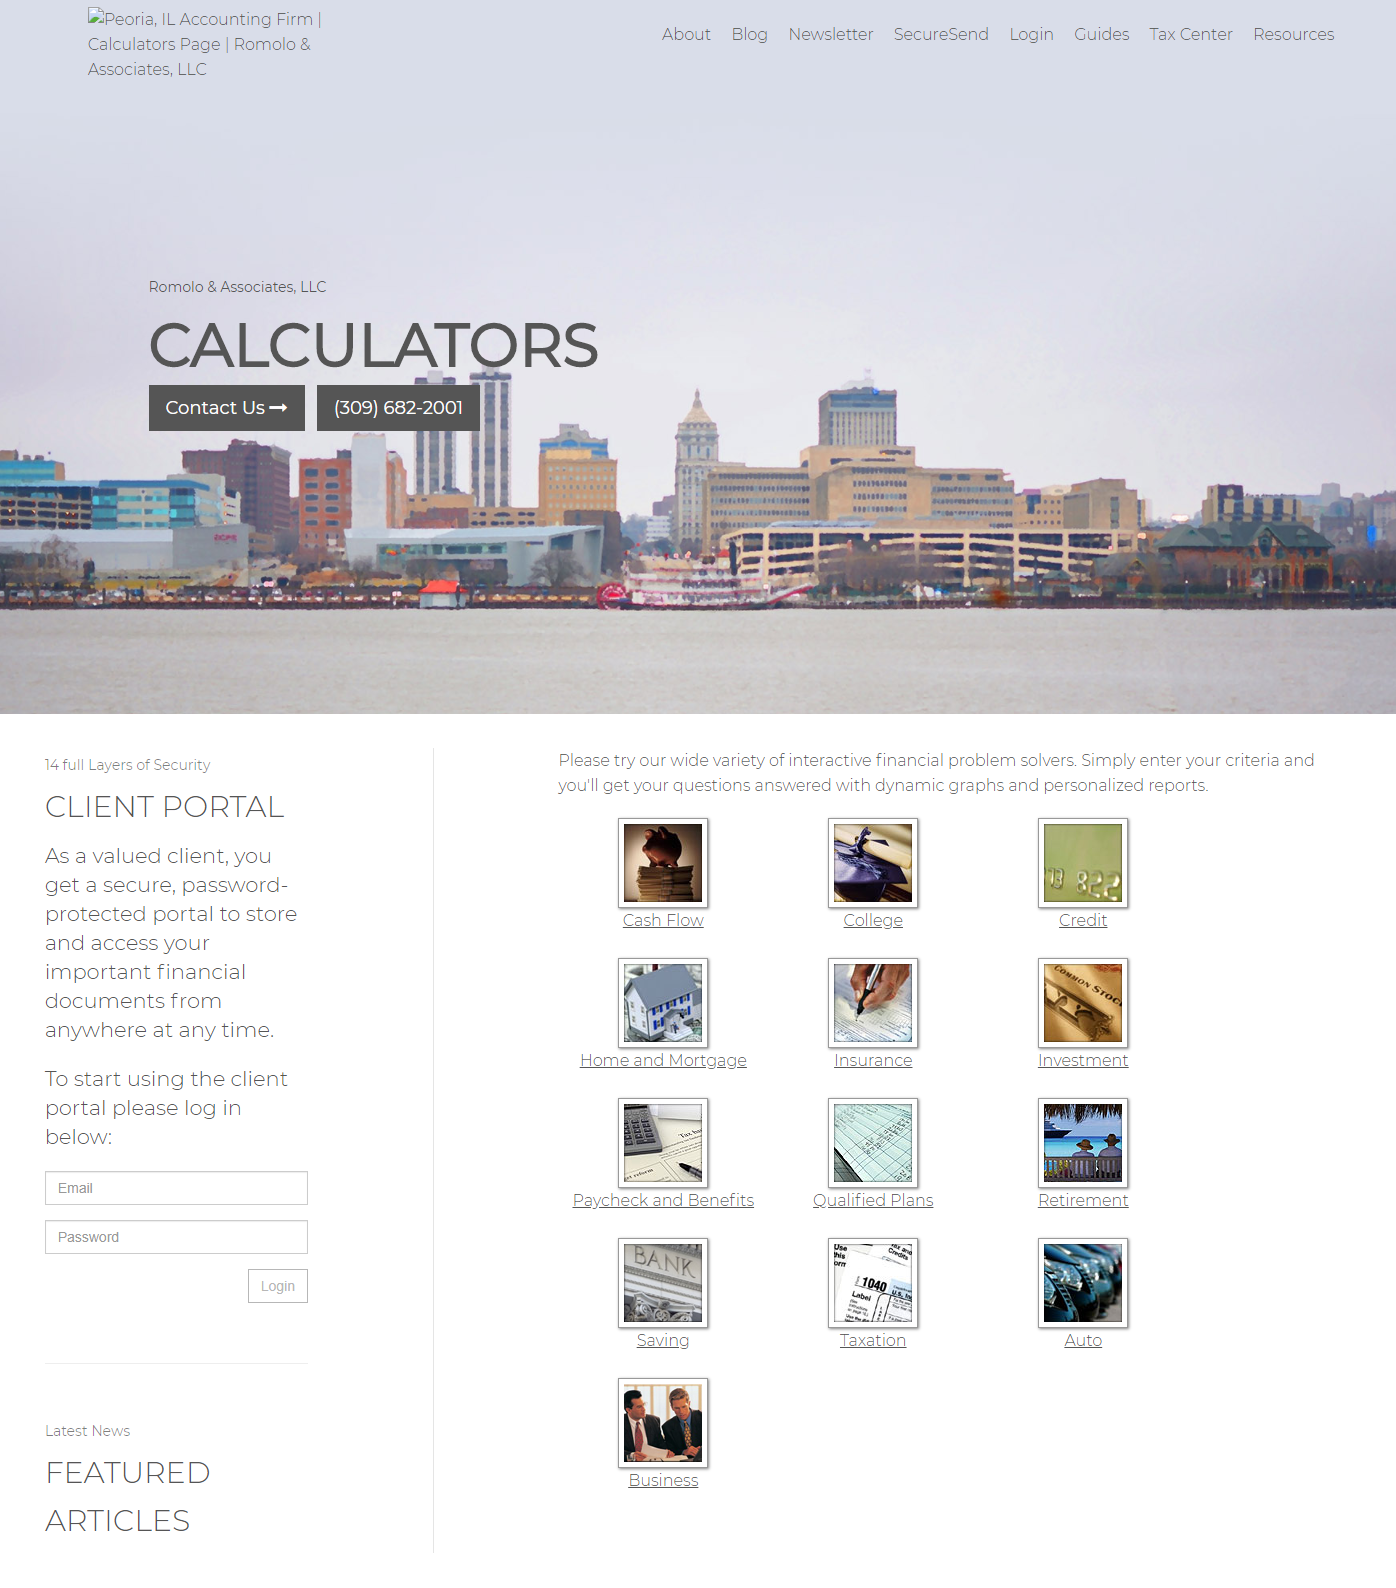 4 Conversion Focused Features for Accounting Firm Websites - Calculators